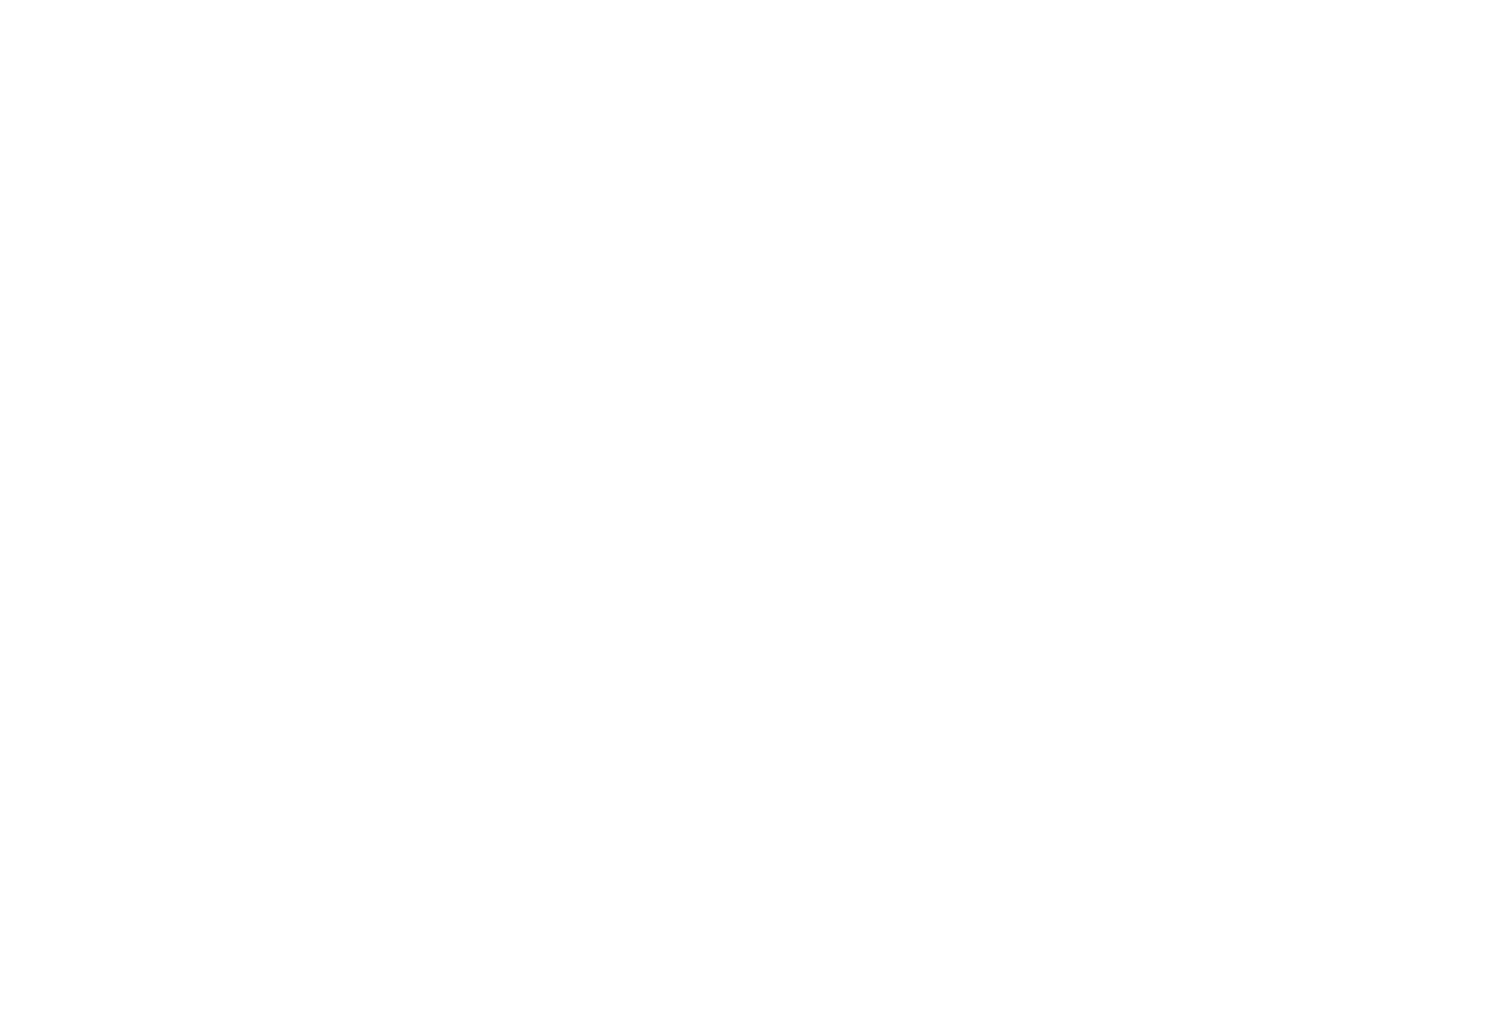 Calm Waters Coffee Roasters